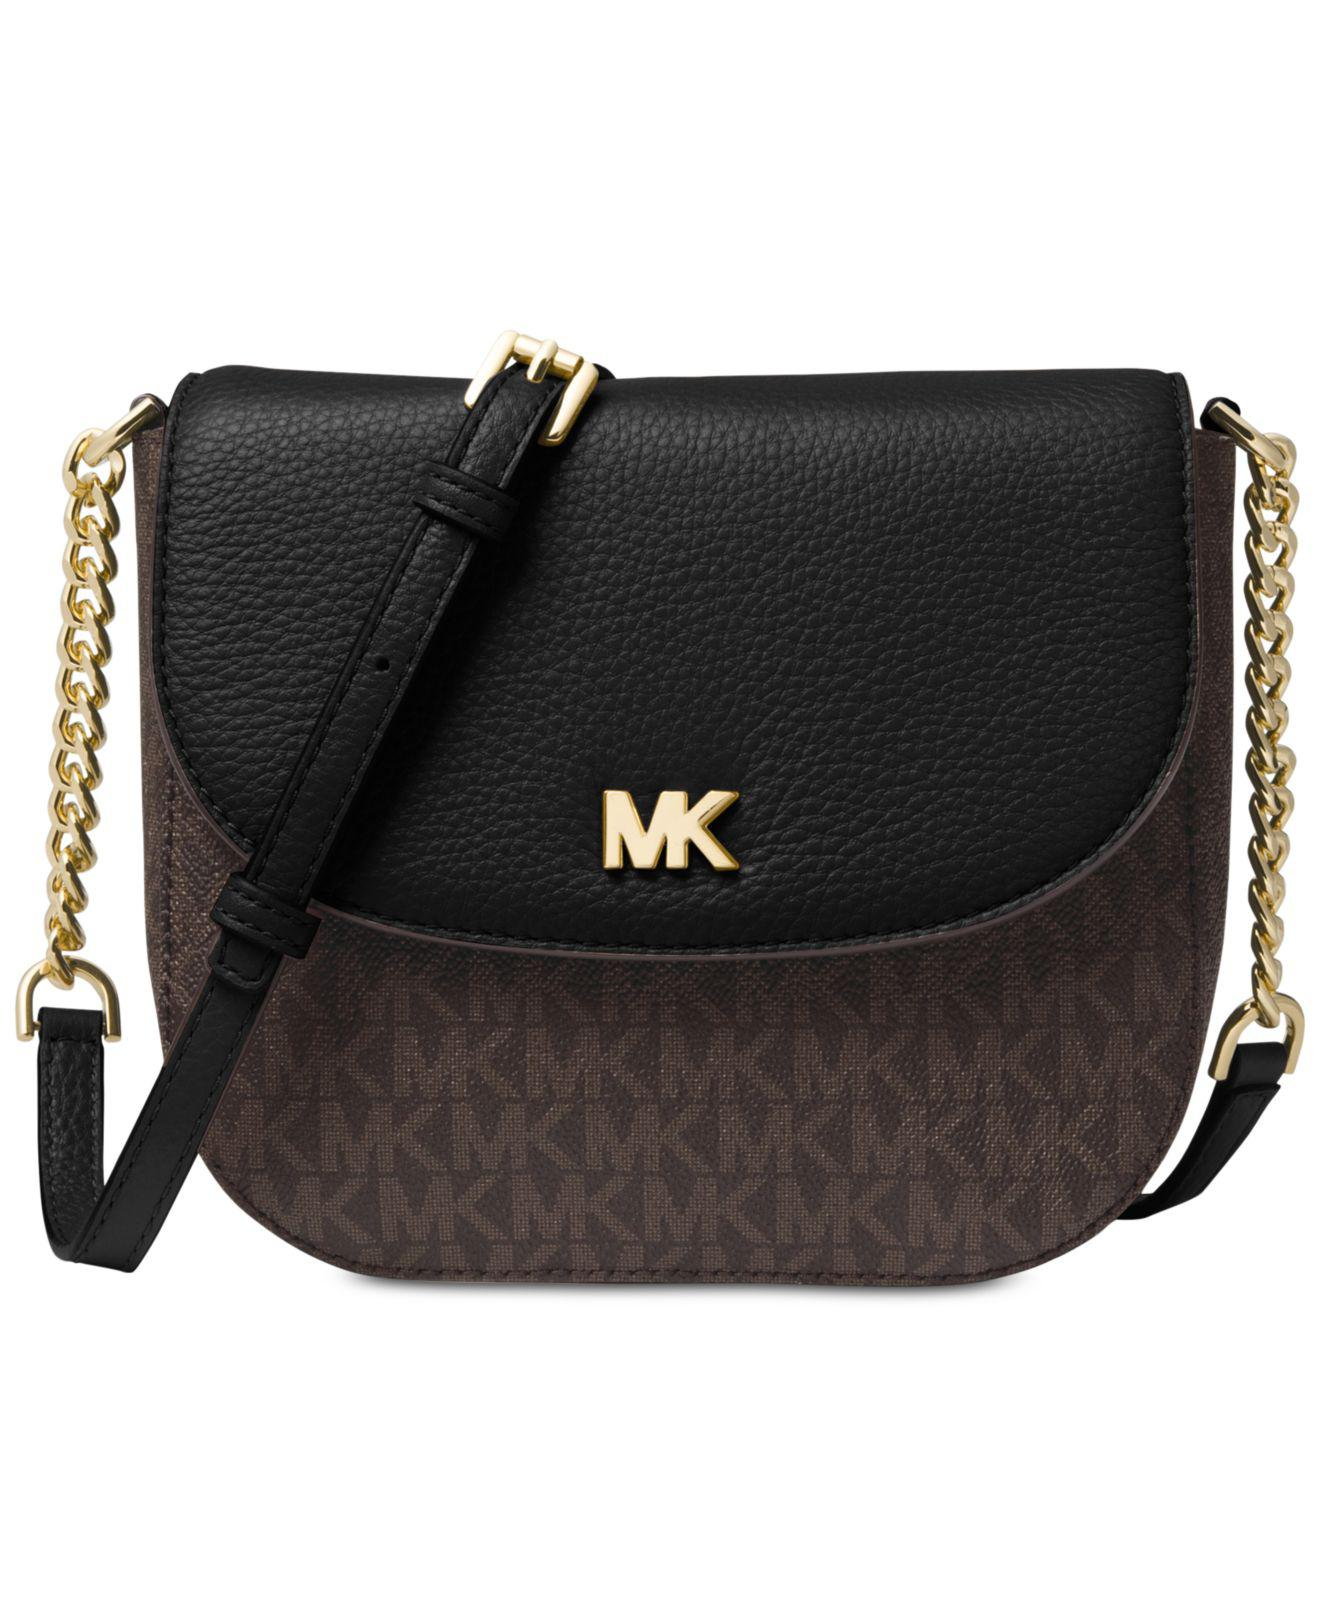 e4a5c1dfd7e2 Michael Kors Michael Half Dome Signature Small Crossbody in Black - Lyst